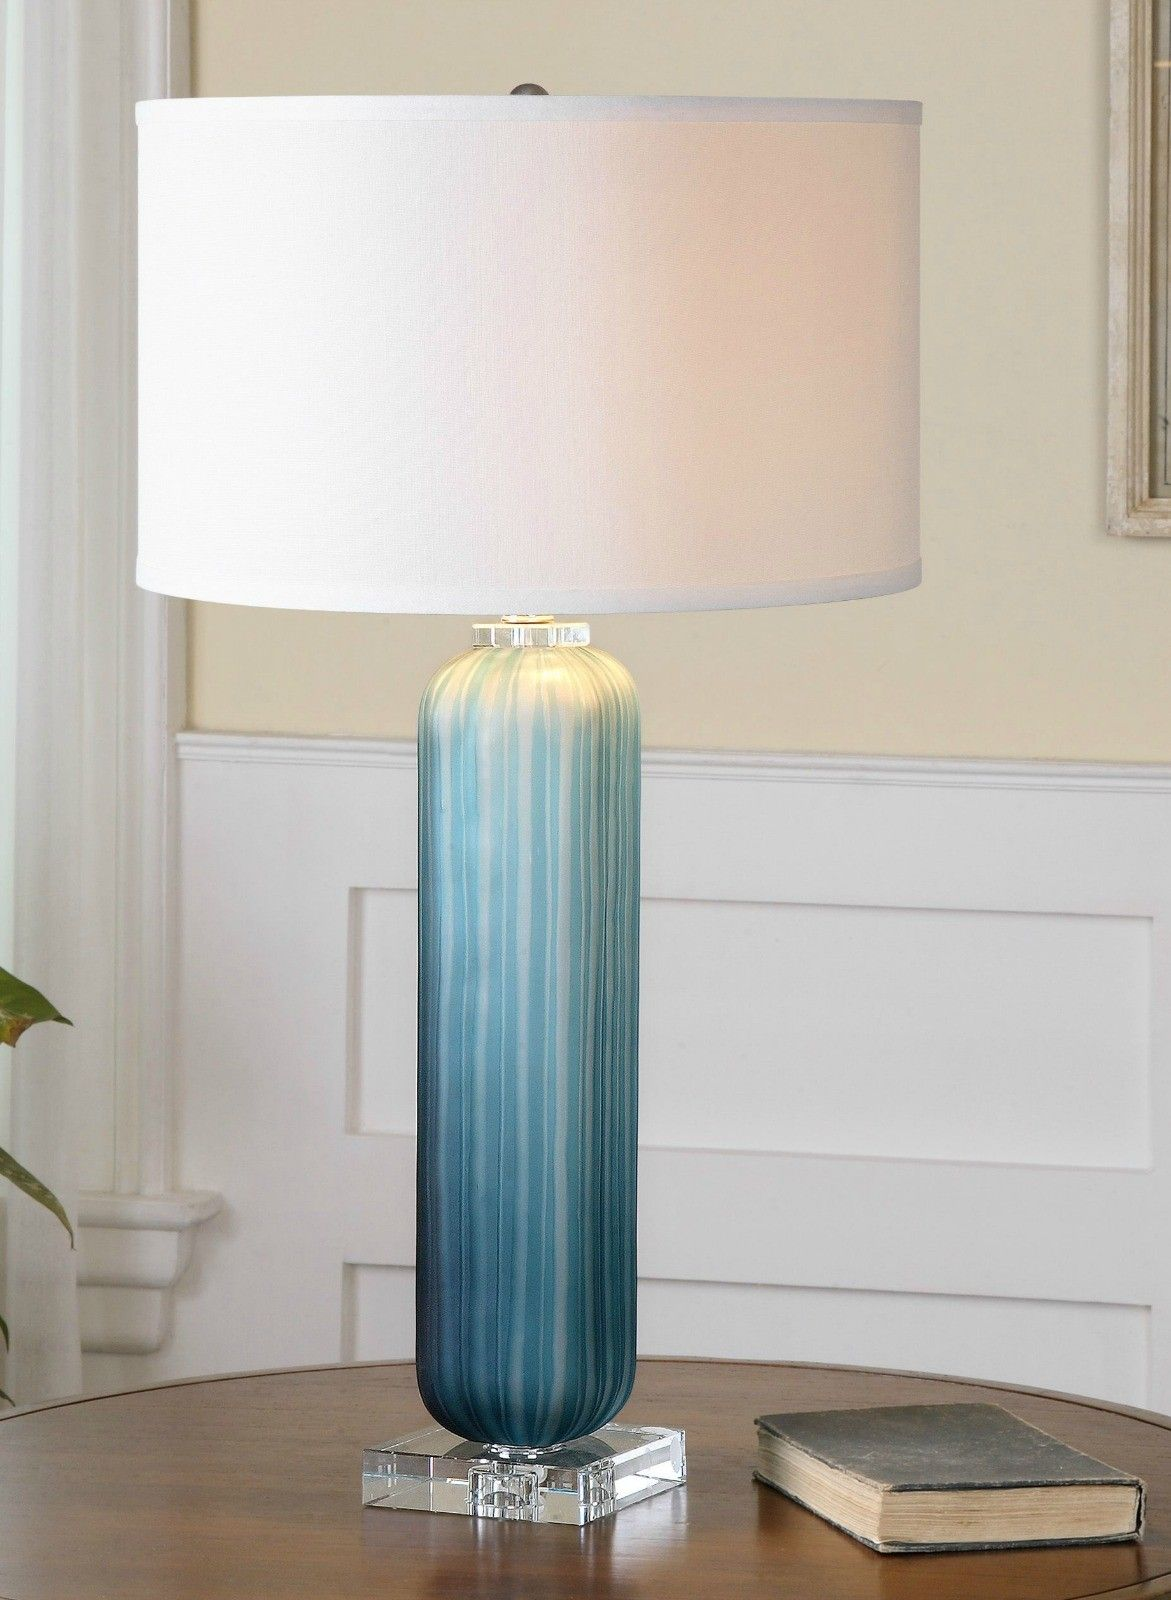 caudina frosted blue glass lamp beach cylinder accent table stunning your home love the beachy feel this heavily almost like sea nautical kitchen pendant lights furniture market